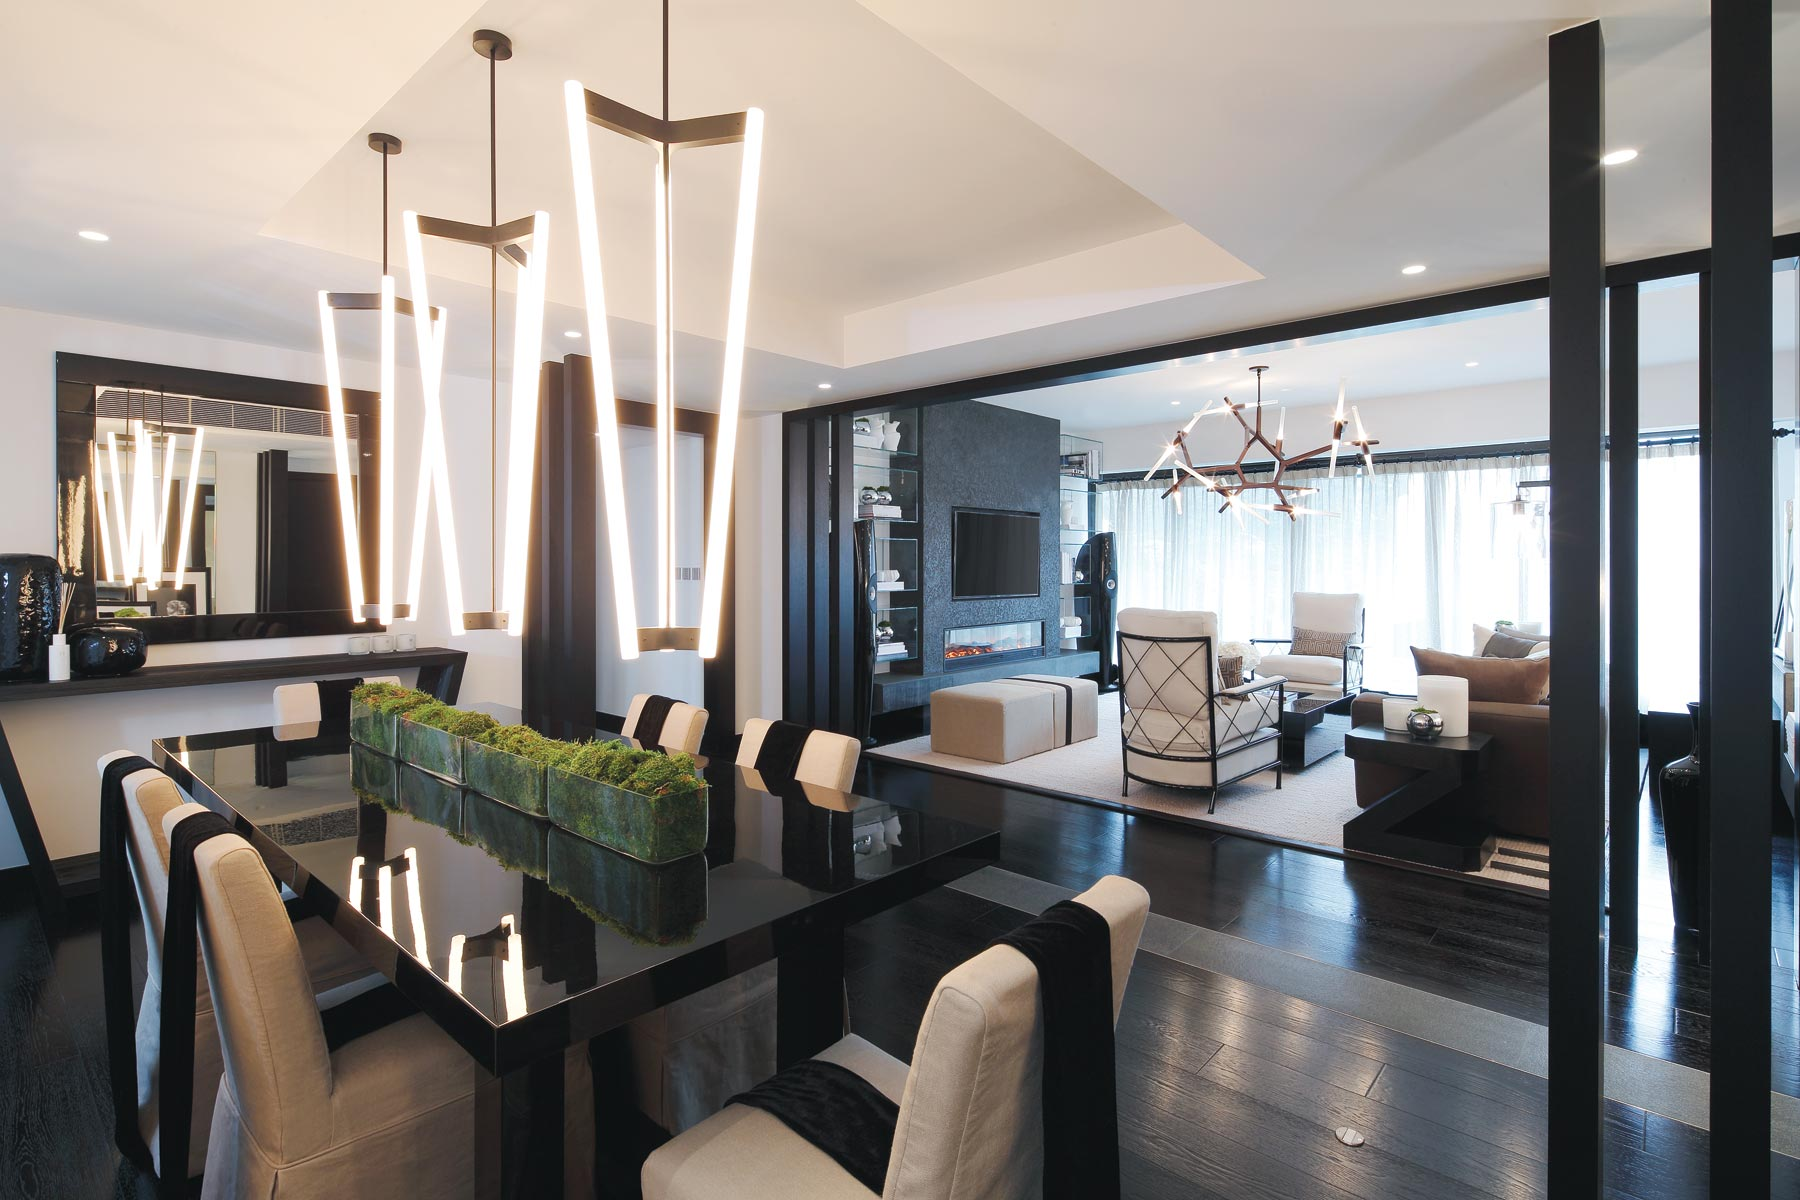 The 10 Best Interior Design Projects by Kelly Hoppen interior design projects by kelly hoppen The 10 Best Interior Design Projects by Kelly Hoppen best interior design projects by kelly hoppen hong kong